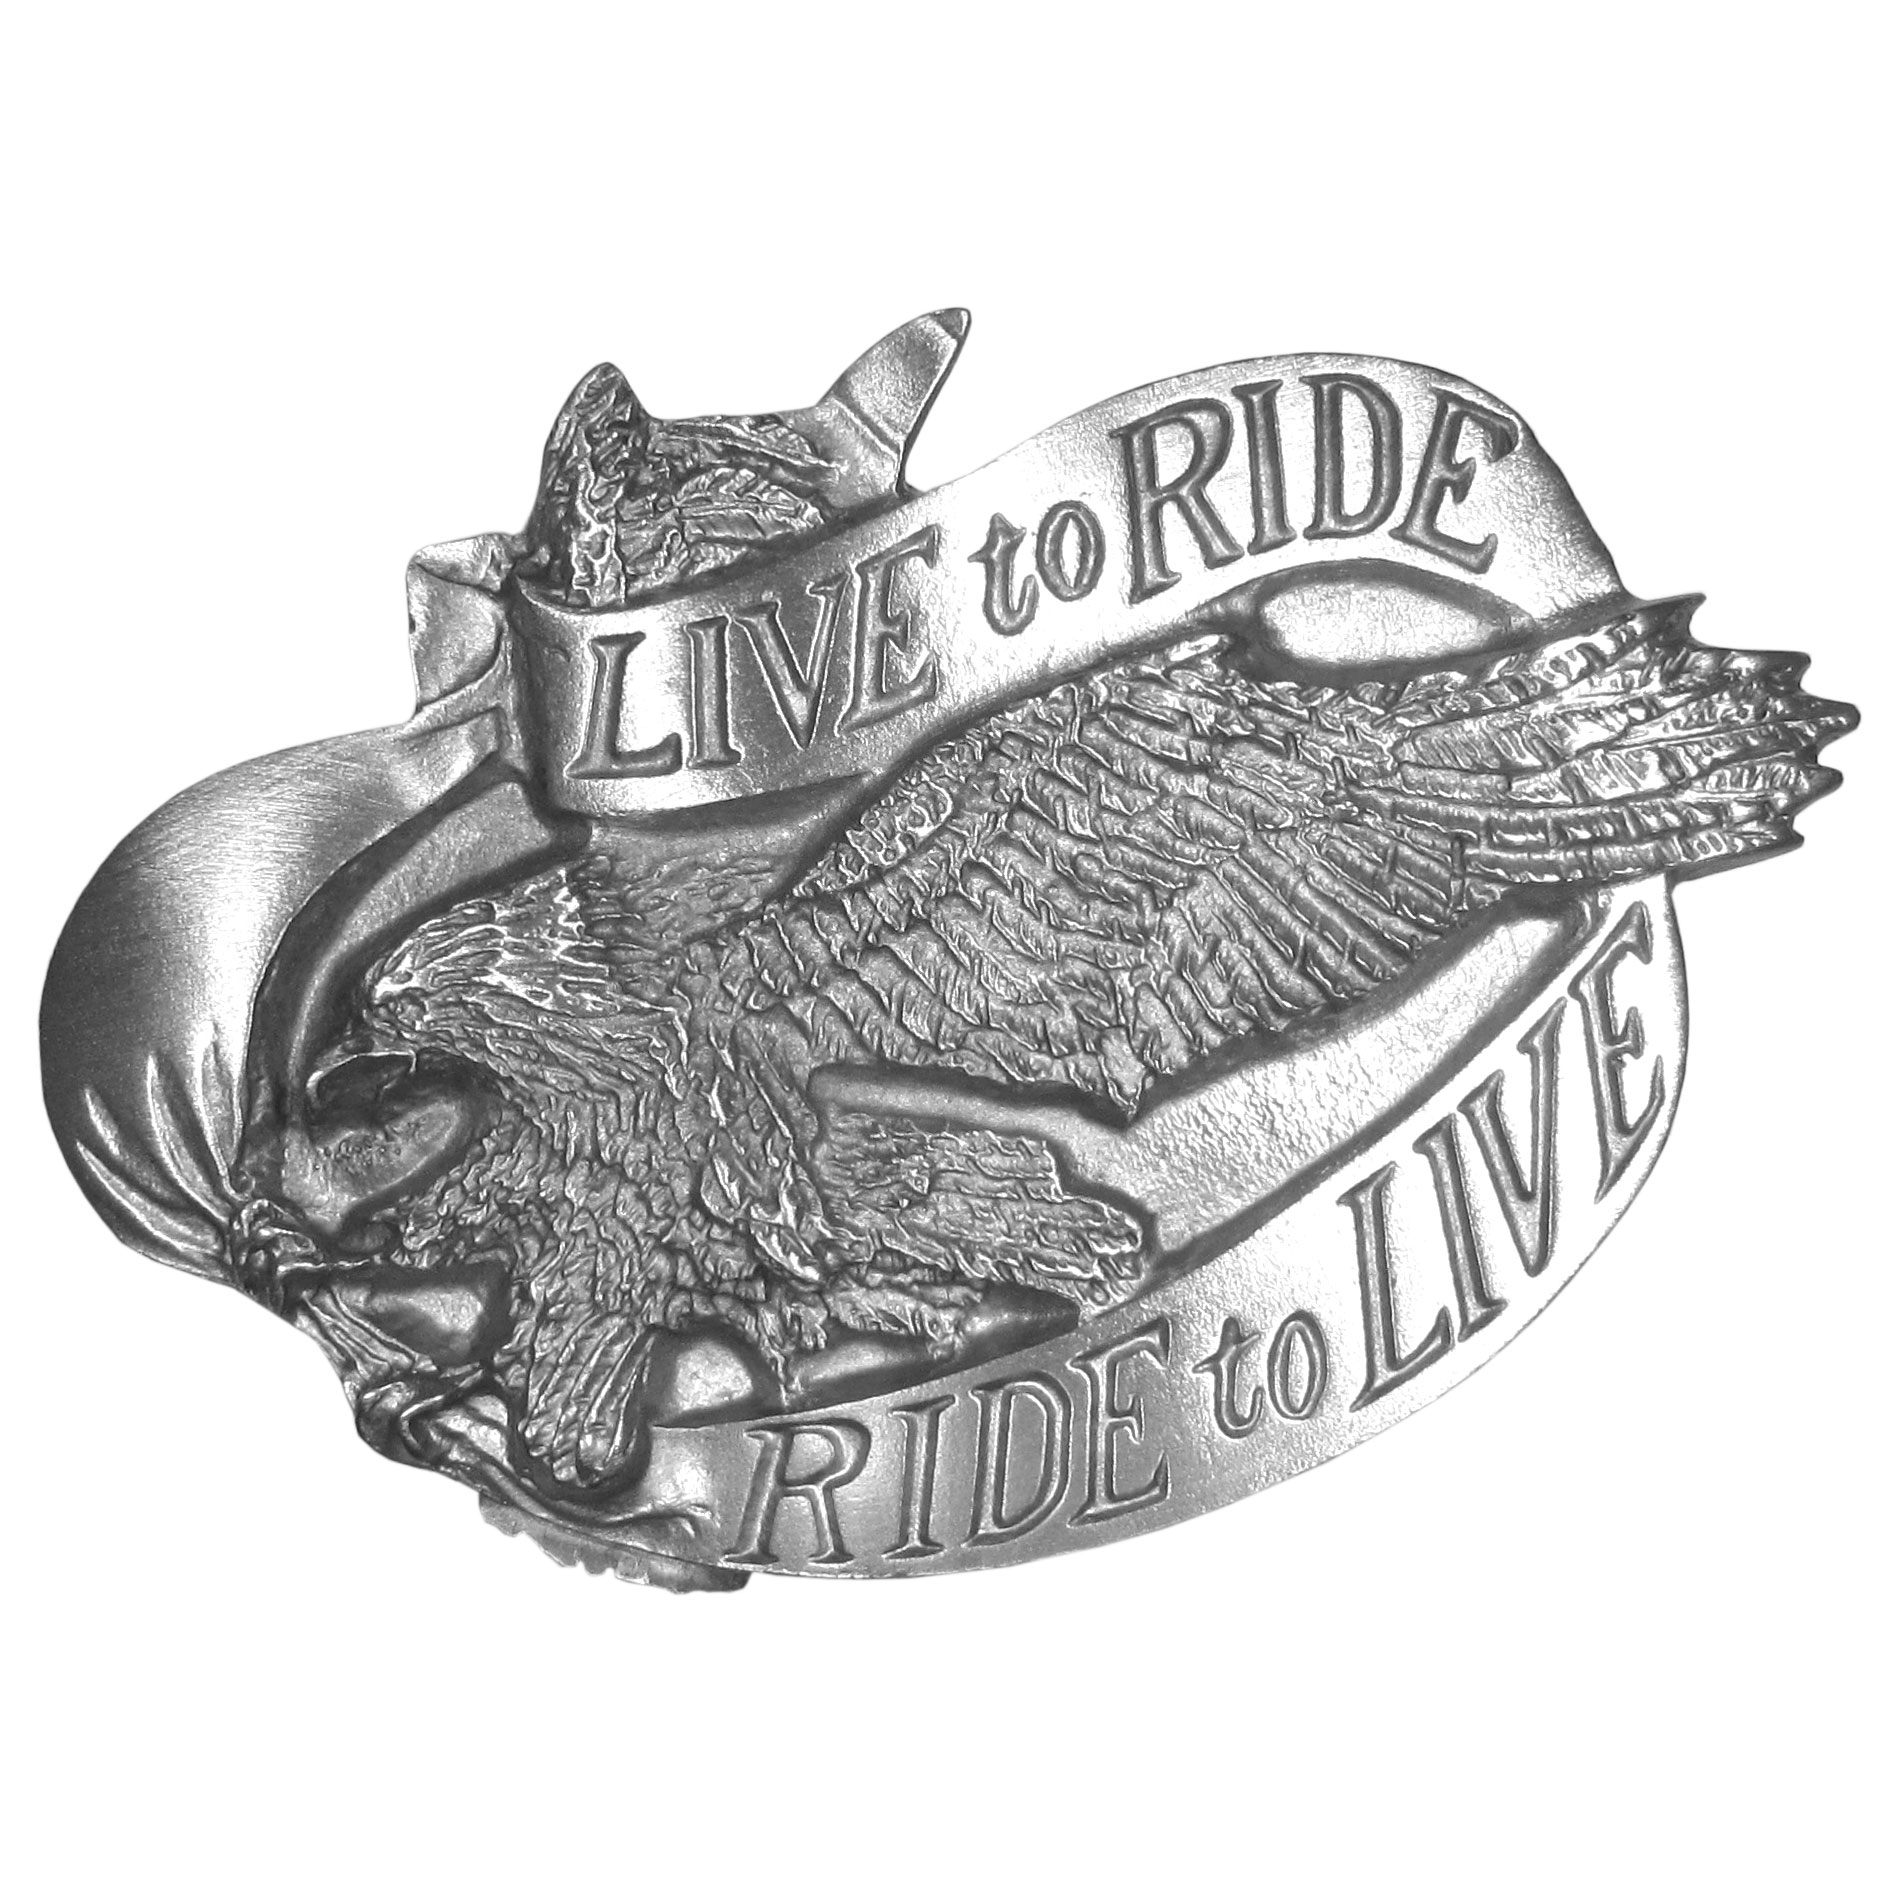 "Live to Ride Antiqued Belt Buckle - """"""Live To Ride, Ride to Live"""" is proudly written across this buckle. In the center of the banner is an eagle, soaring through the sky with his claws outstretched. This exquistely carved buckle is made of fully cast metal with a standard bale that fits up to 2"""" belts. Siskiyou's unique buckle designs often become collectors items and are unequaled with the best craftsmanship."""